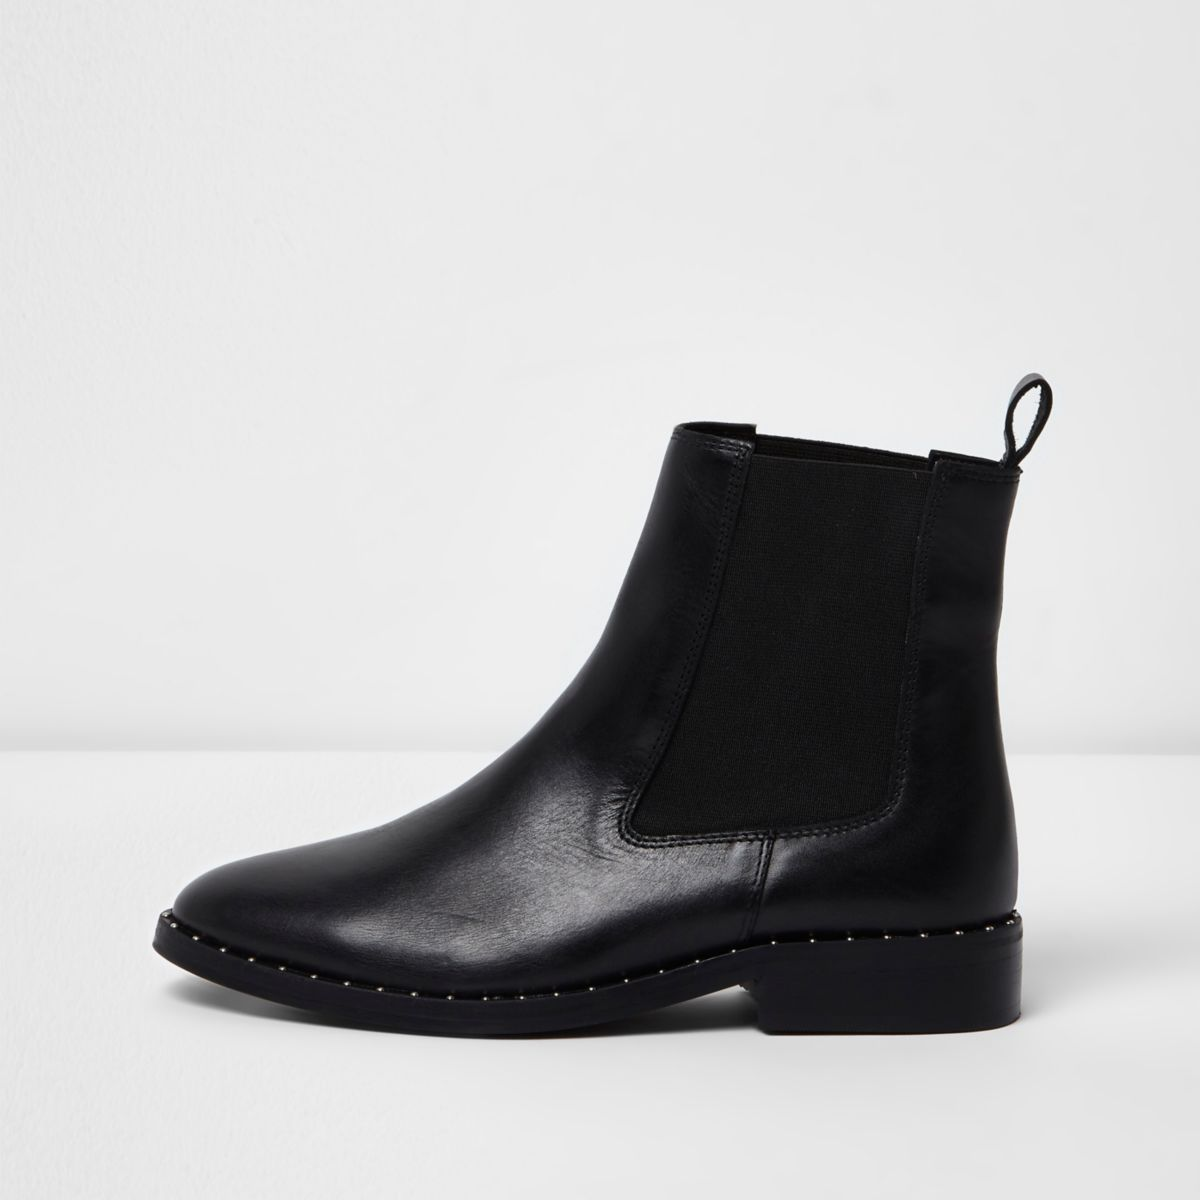 Women's Chelsea Boots. Add a touch of classic style to your wardrobe with the newest range of women's chelsea boots from Timberland. Choose from a wide selection of contemporary colours and on-trend materials to suit your personal style.